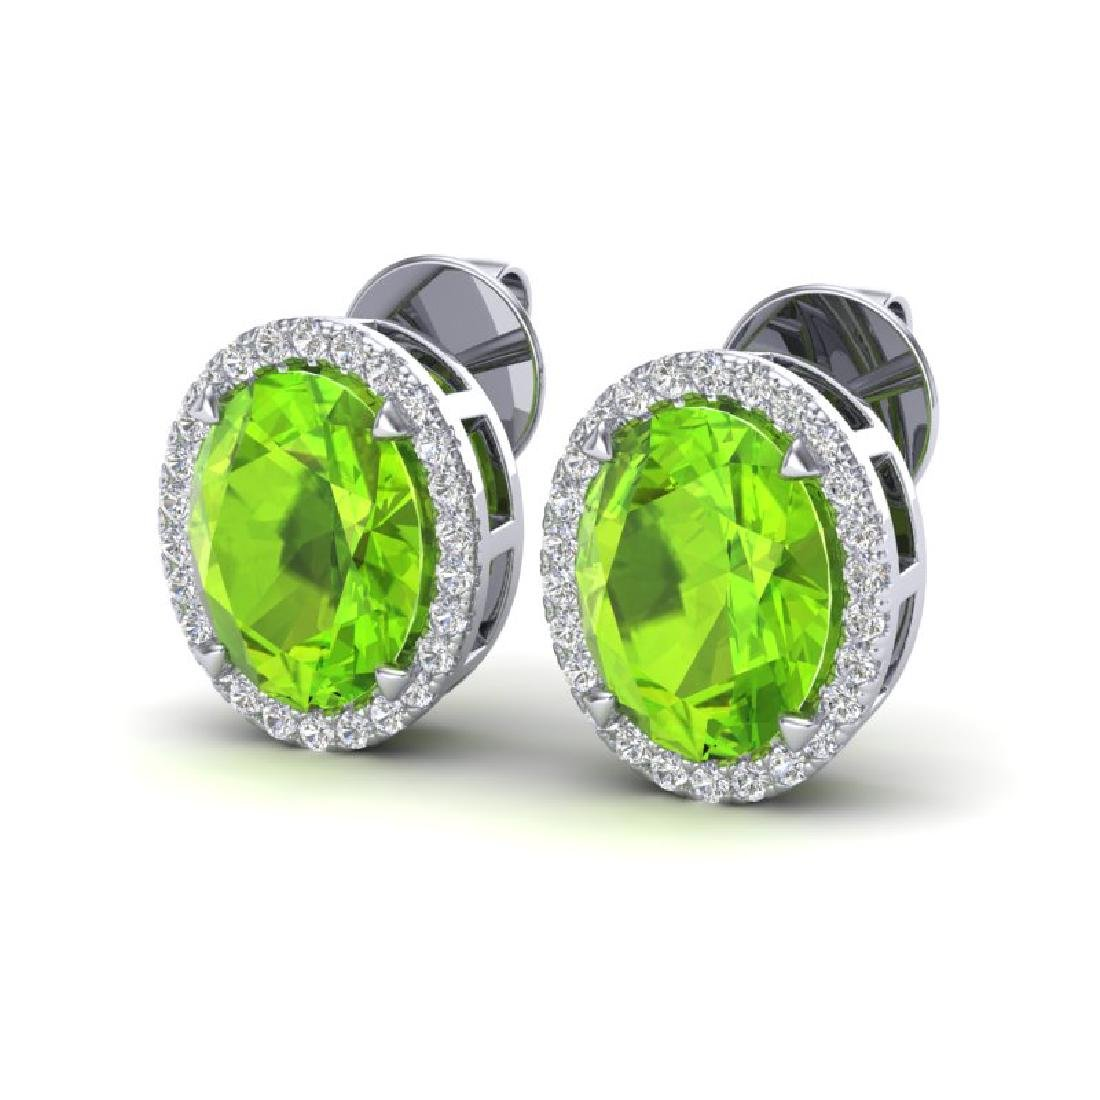 5.50 CTW Peridot & Micro VS/SI Diamond Halo Earrings